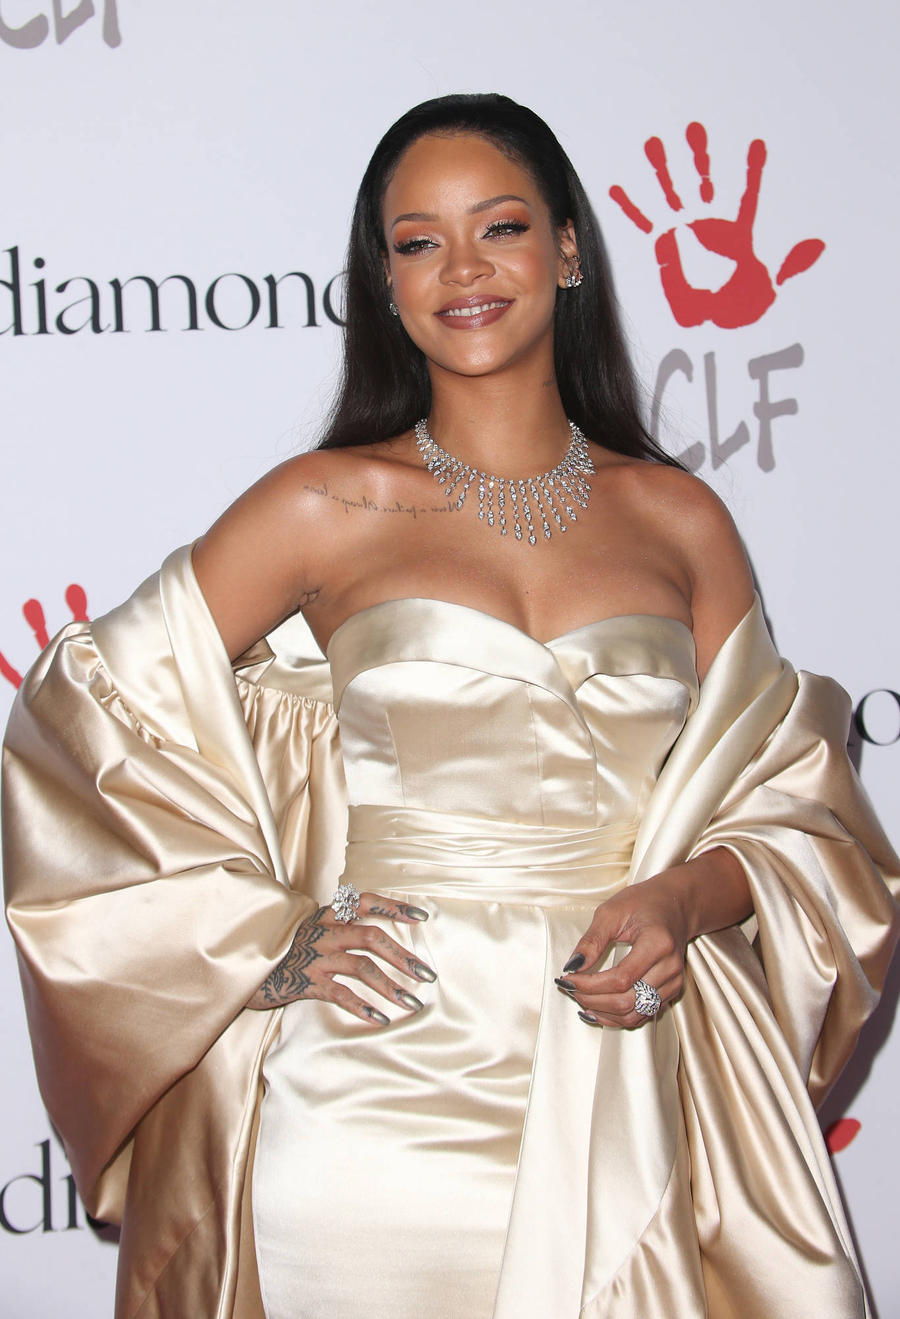 Rihanna Wants Fans To Work For Global Scholarship Programme